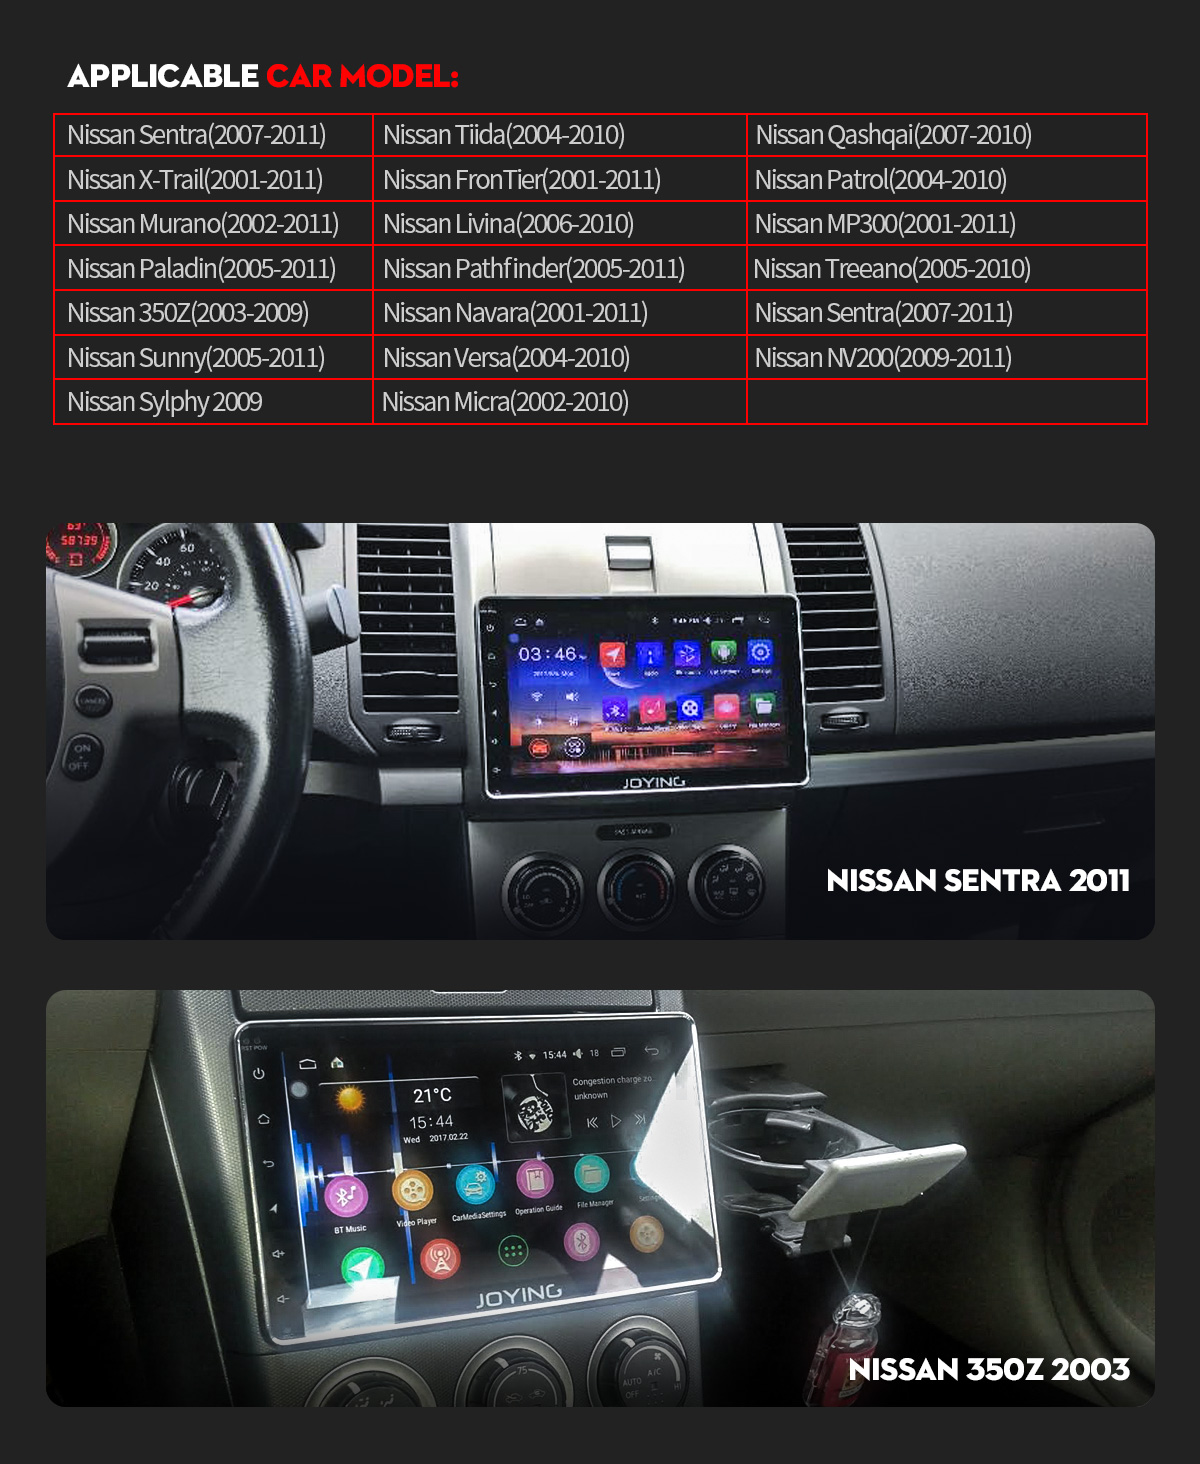 Joying Hot Sale Android 80 Oreo Car Sound System 4gb 32gb For 2011 Nissan Frontier Stereo Wiring If You Are Not Sure Whether The Unit Can Fit Your Carplease Send Modelyear And Dashboard Picture To Info Or Support